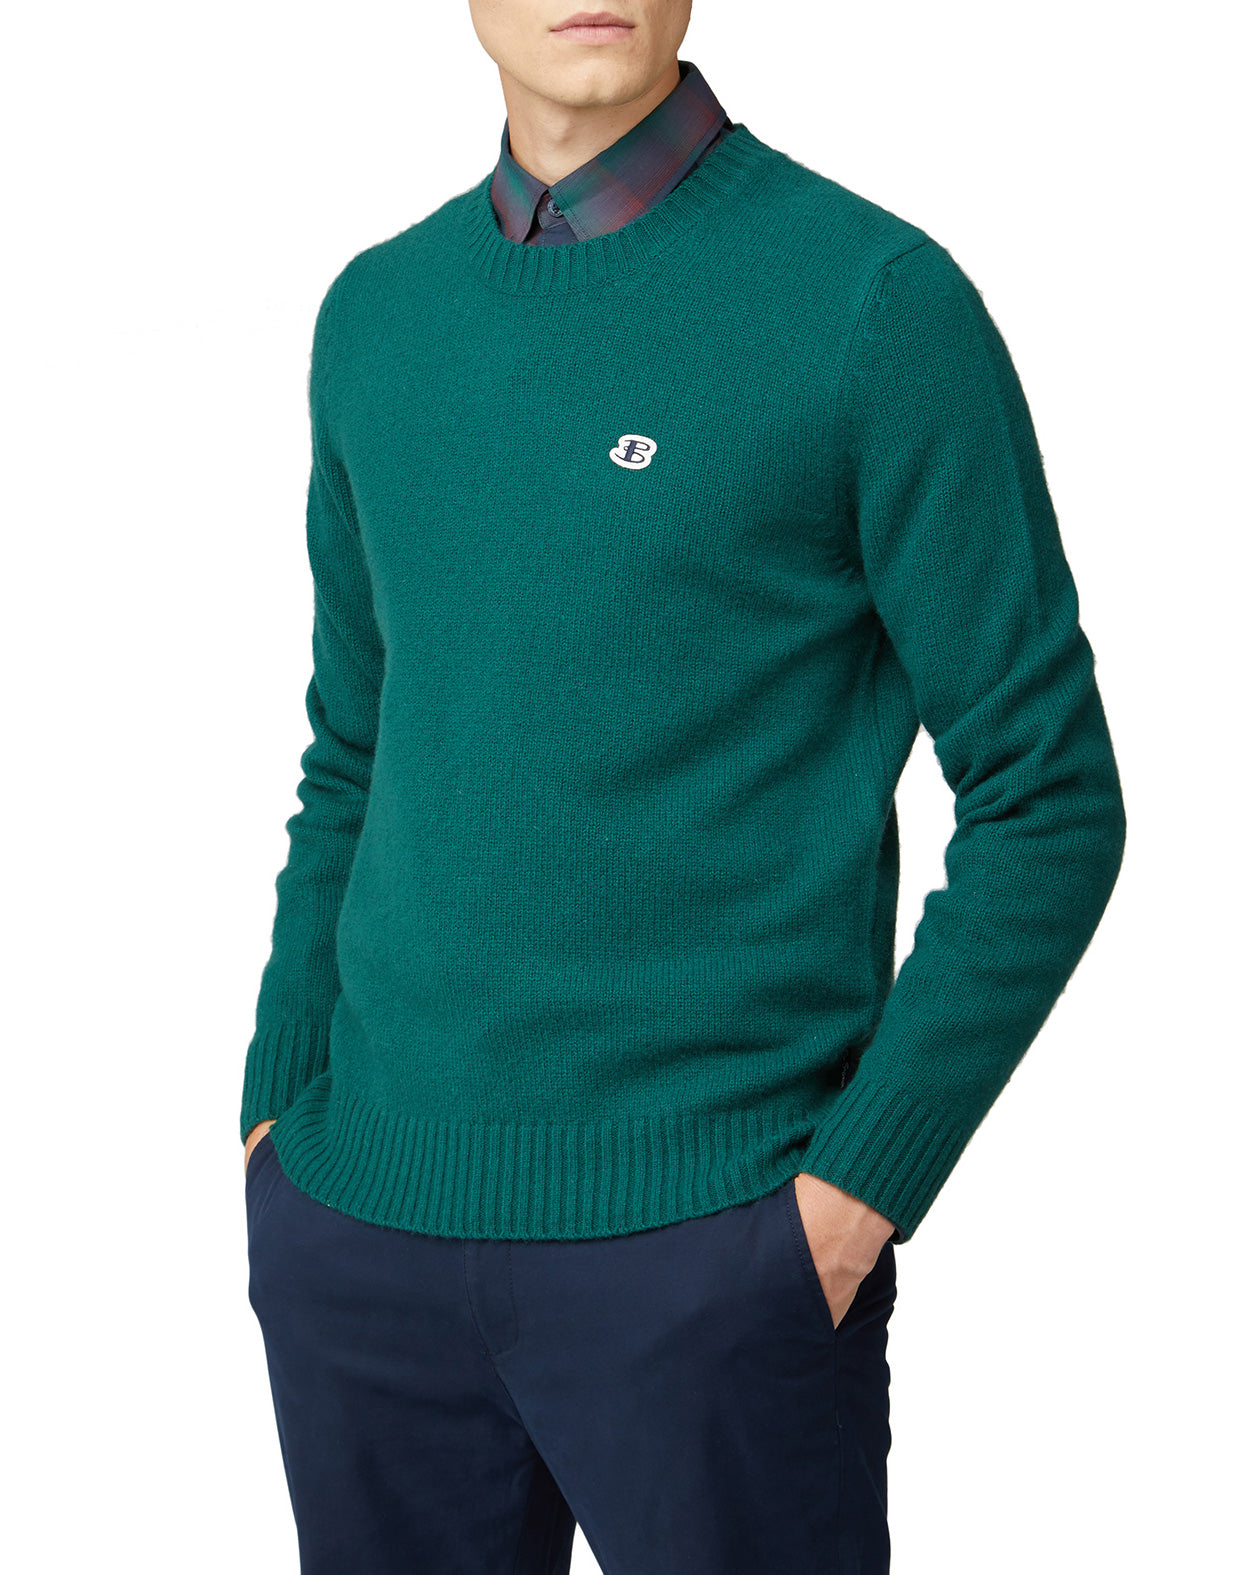 B by Ben Sherman Crewneck Sweater - Forest